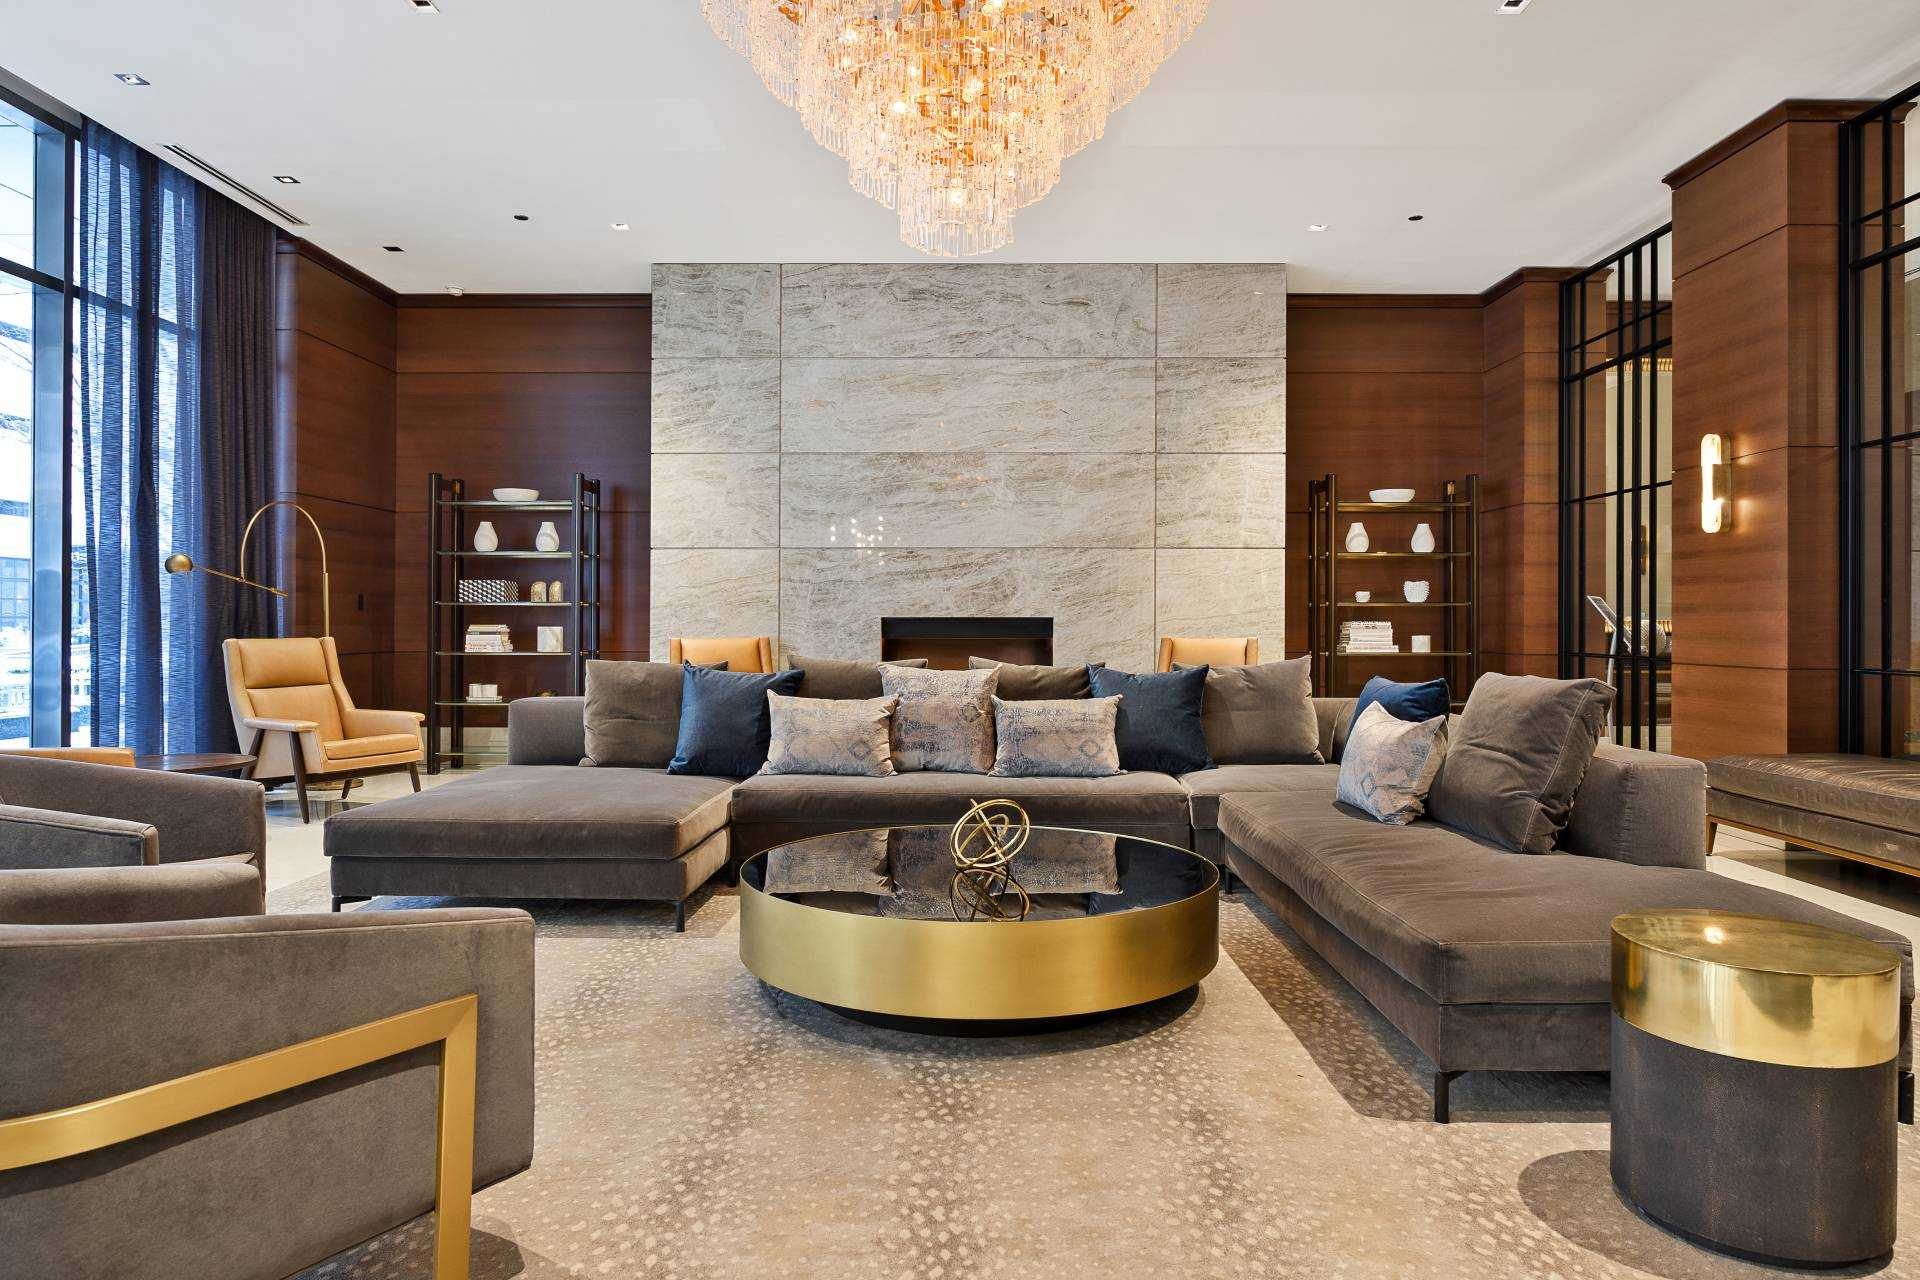 The Lobby Welcomes You Home In Grand Style